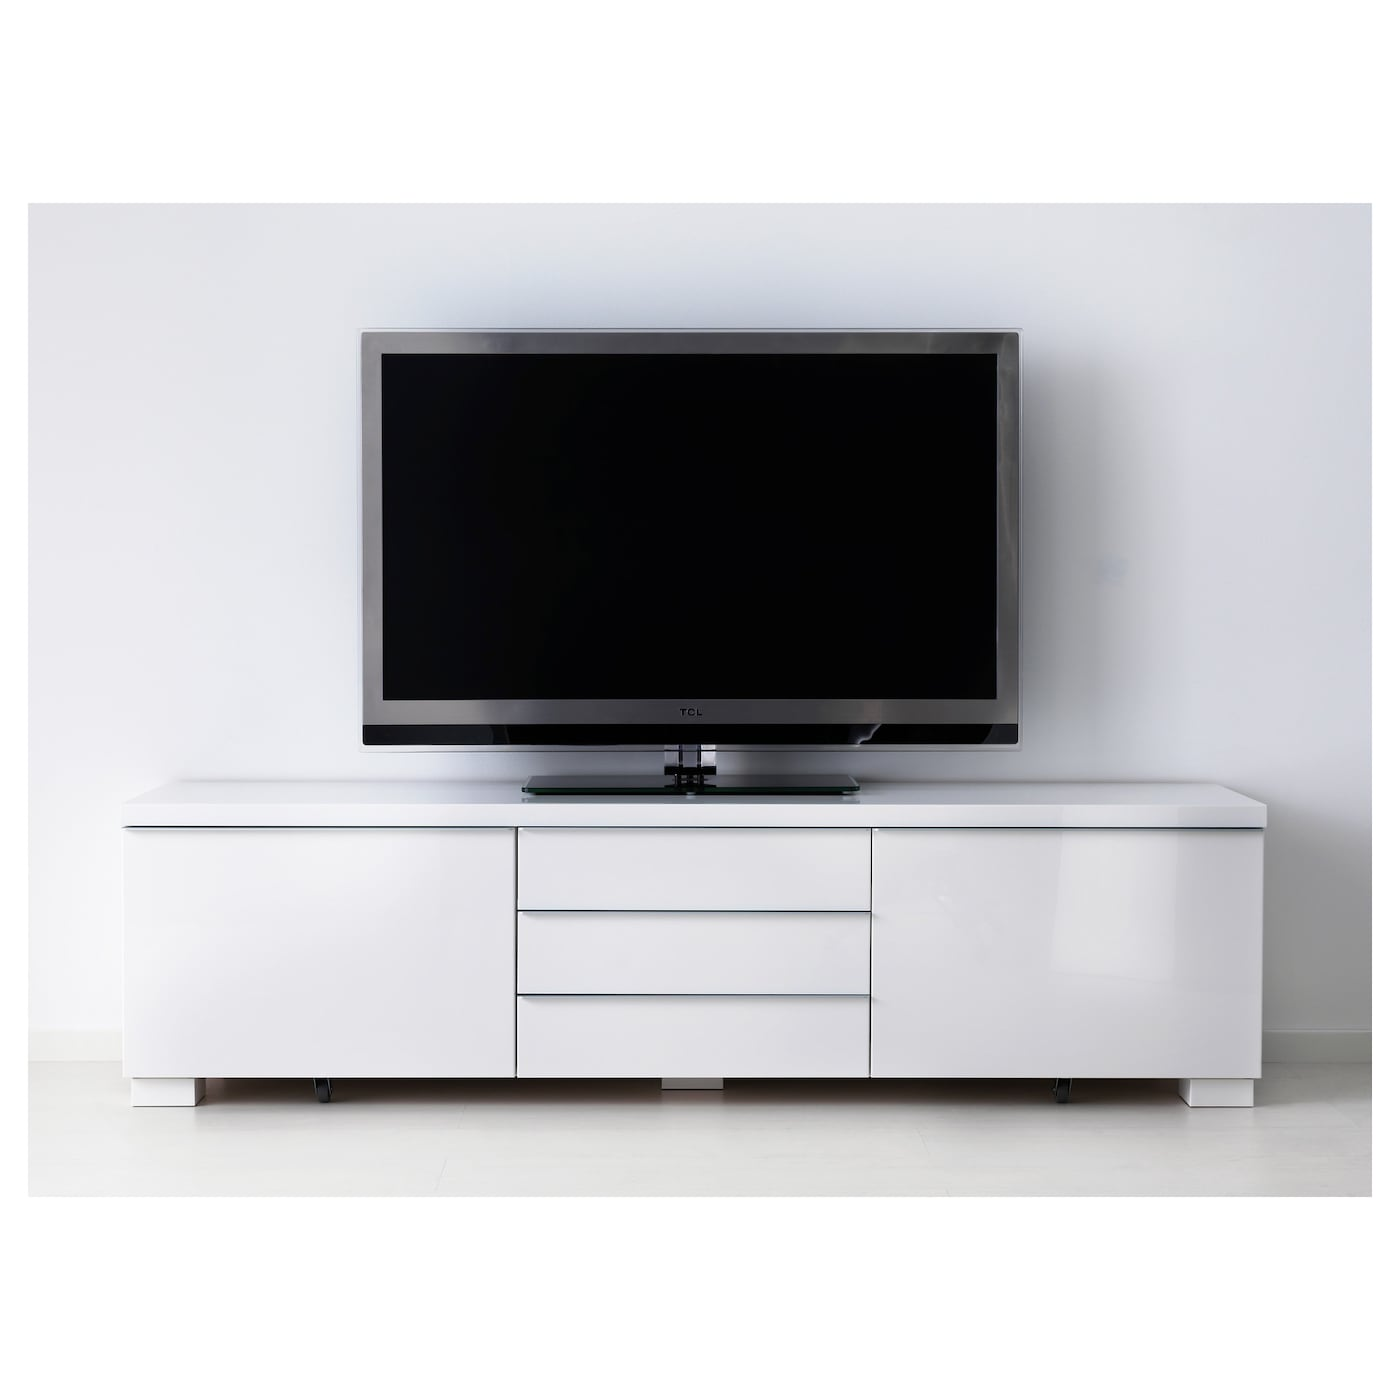 Best Burs Banc Tv Brillant Blanc 180×41 Cm Ikea # Meuble Tv Ikea Bous Blanc